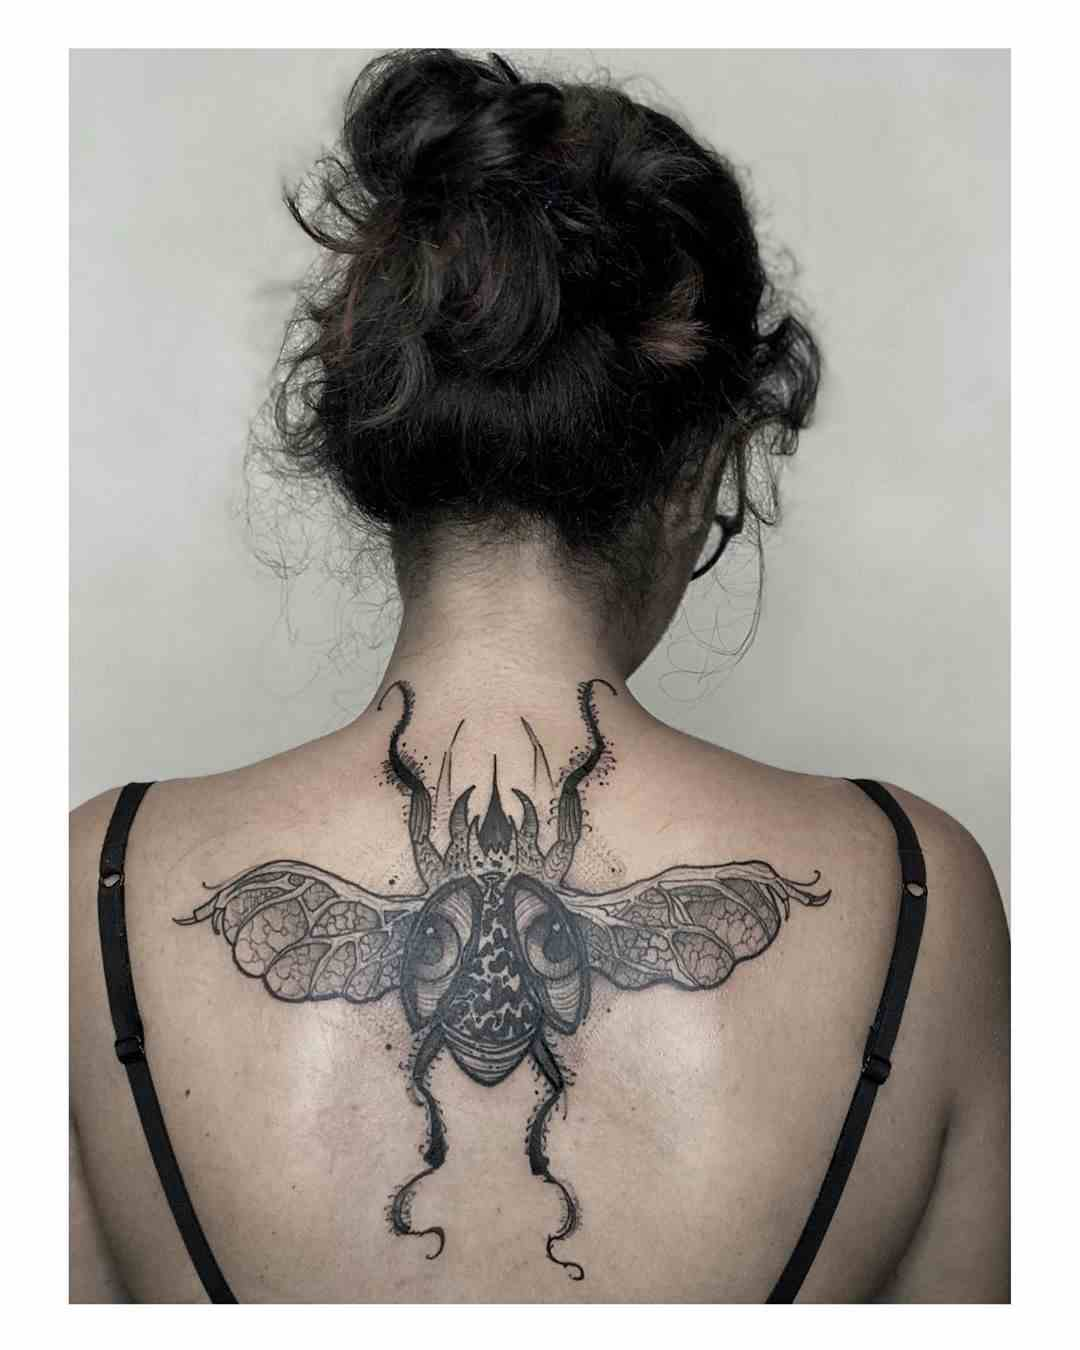 sculp-tattoos-banglore-back-full-fly